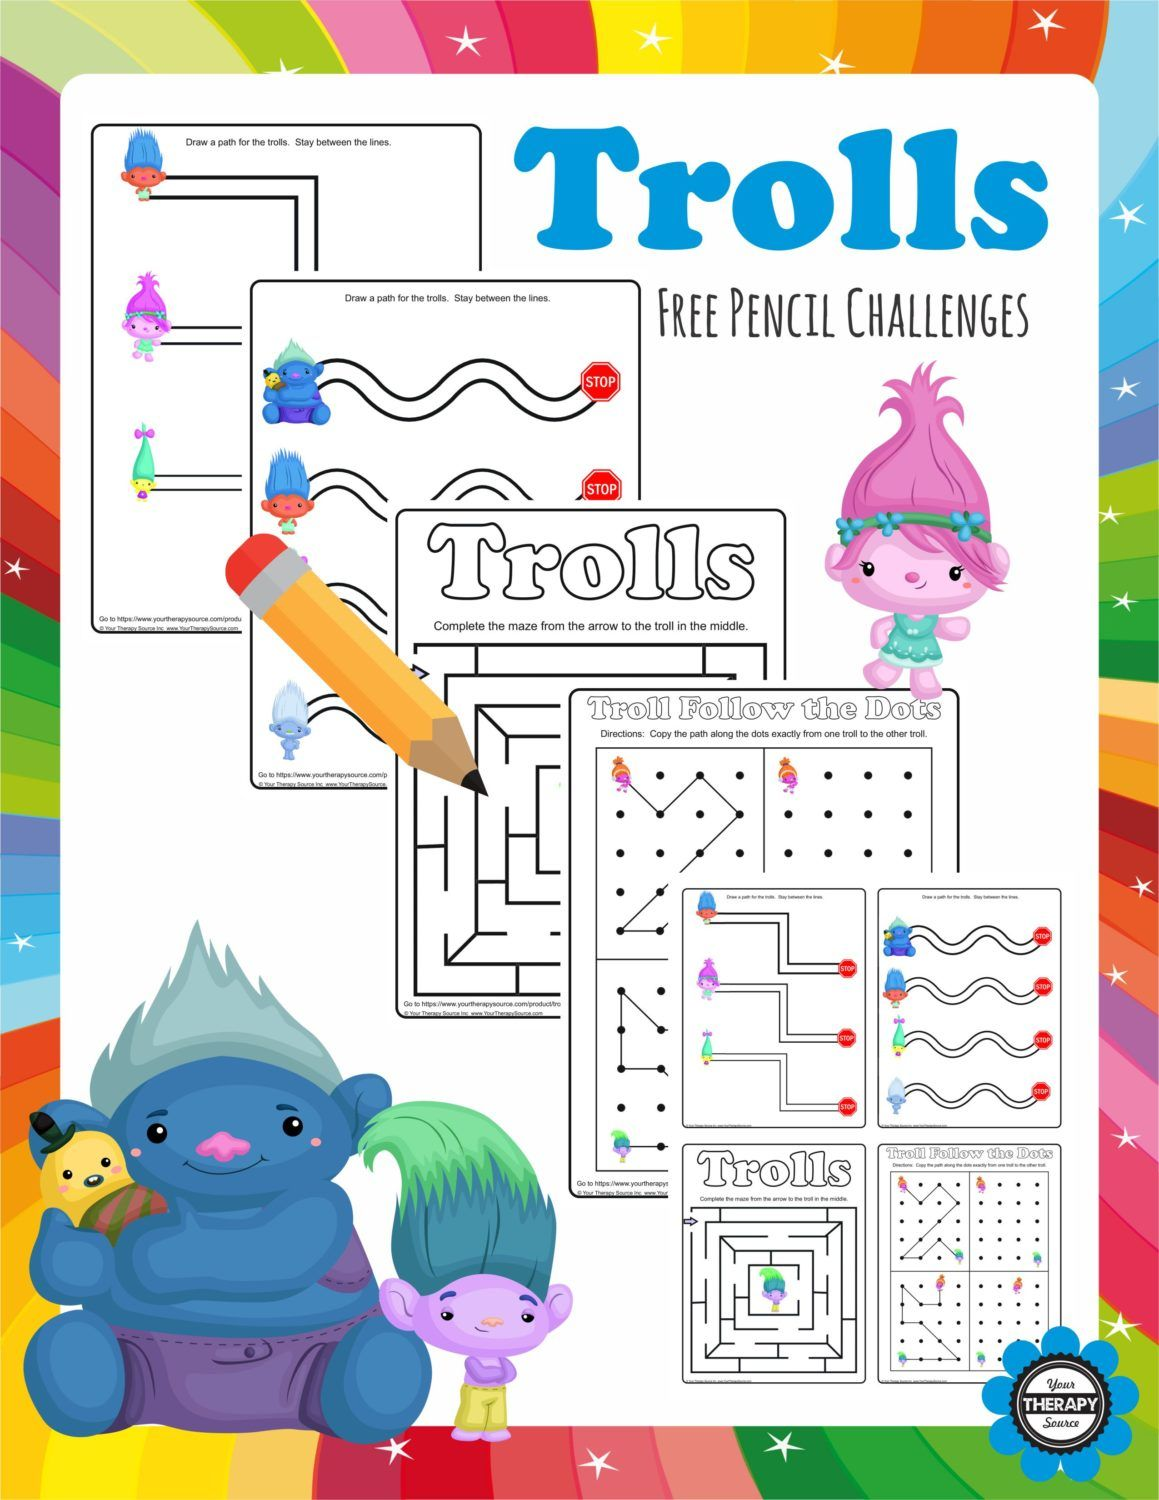 Trolls Pencil Challenges 4 Freebie Pages To Challenge